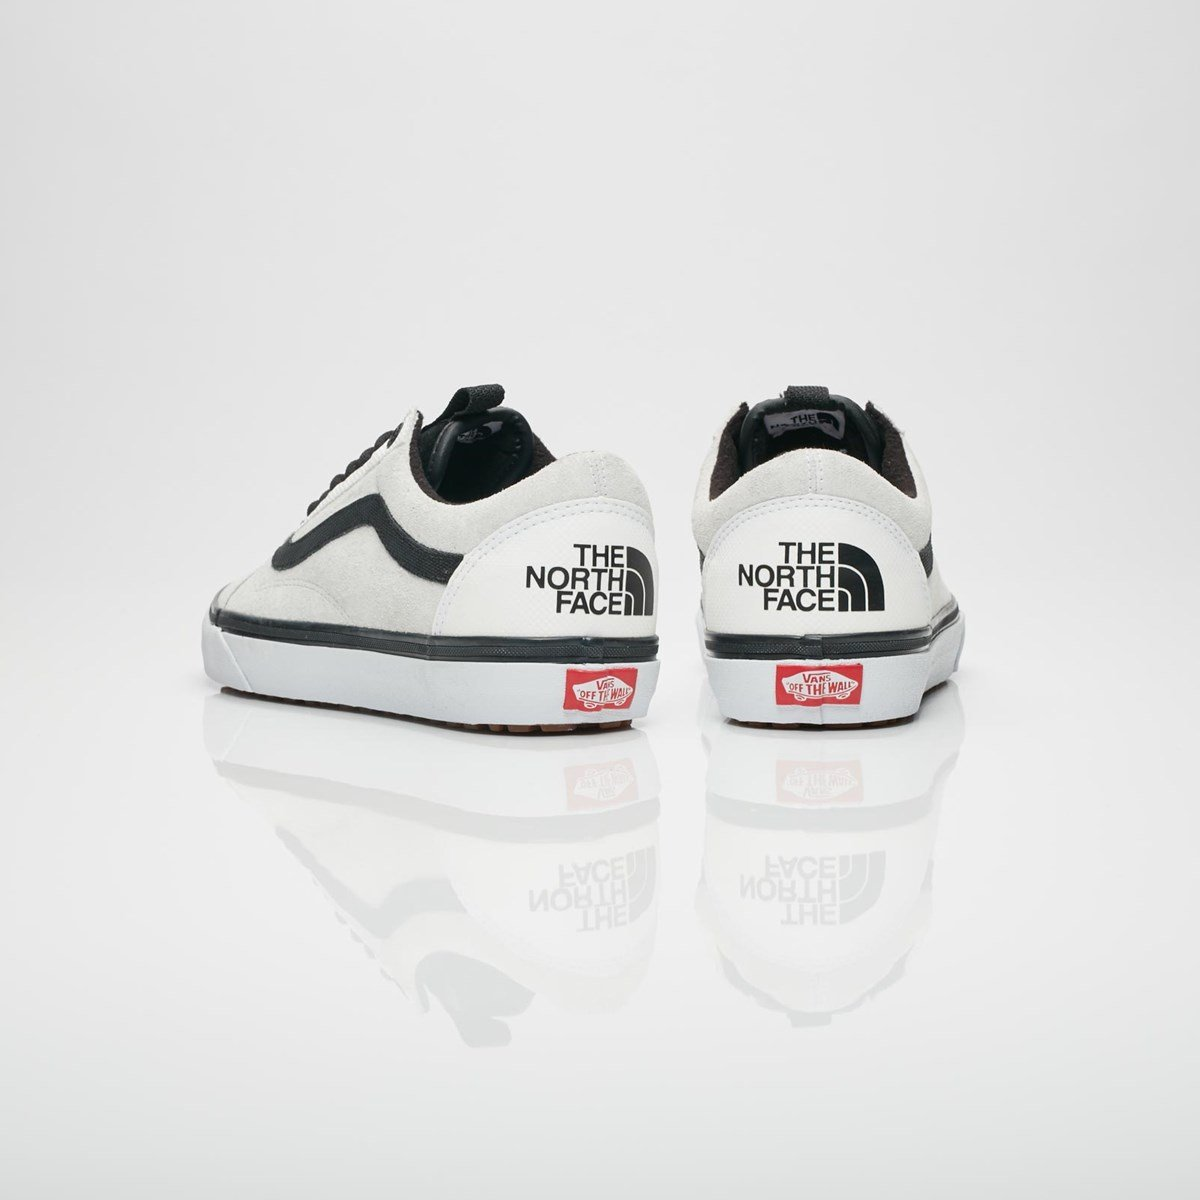 0a327b7d6547 Vans Old Skool MTE DX x The North Face - Vn0a348gqwh - Sneakersnstuff